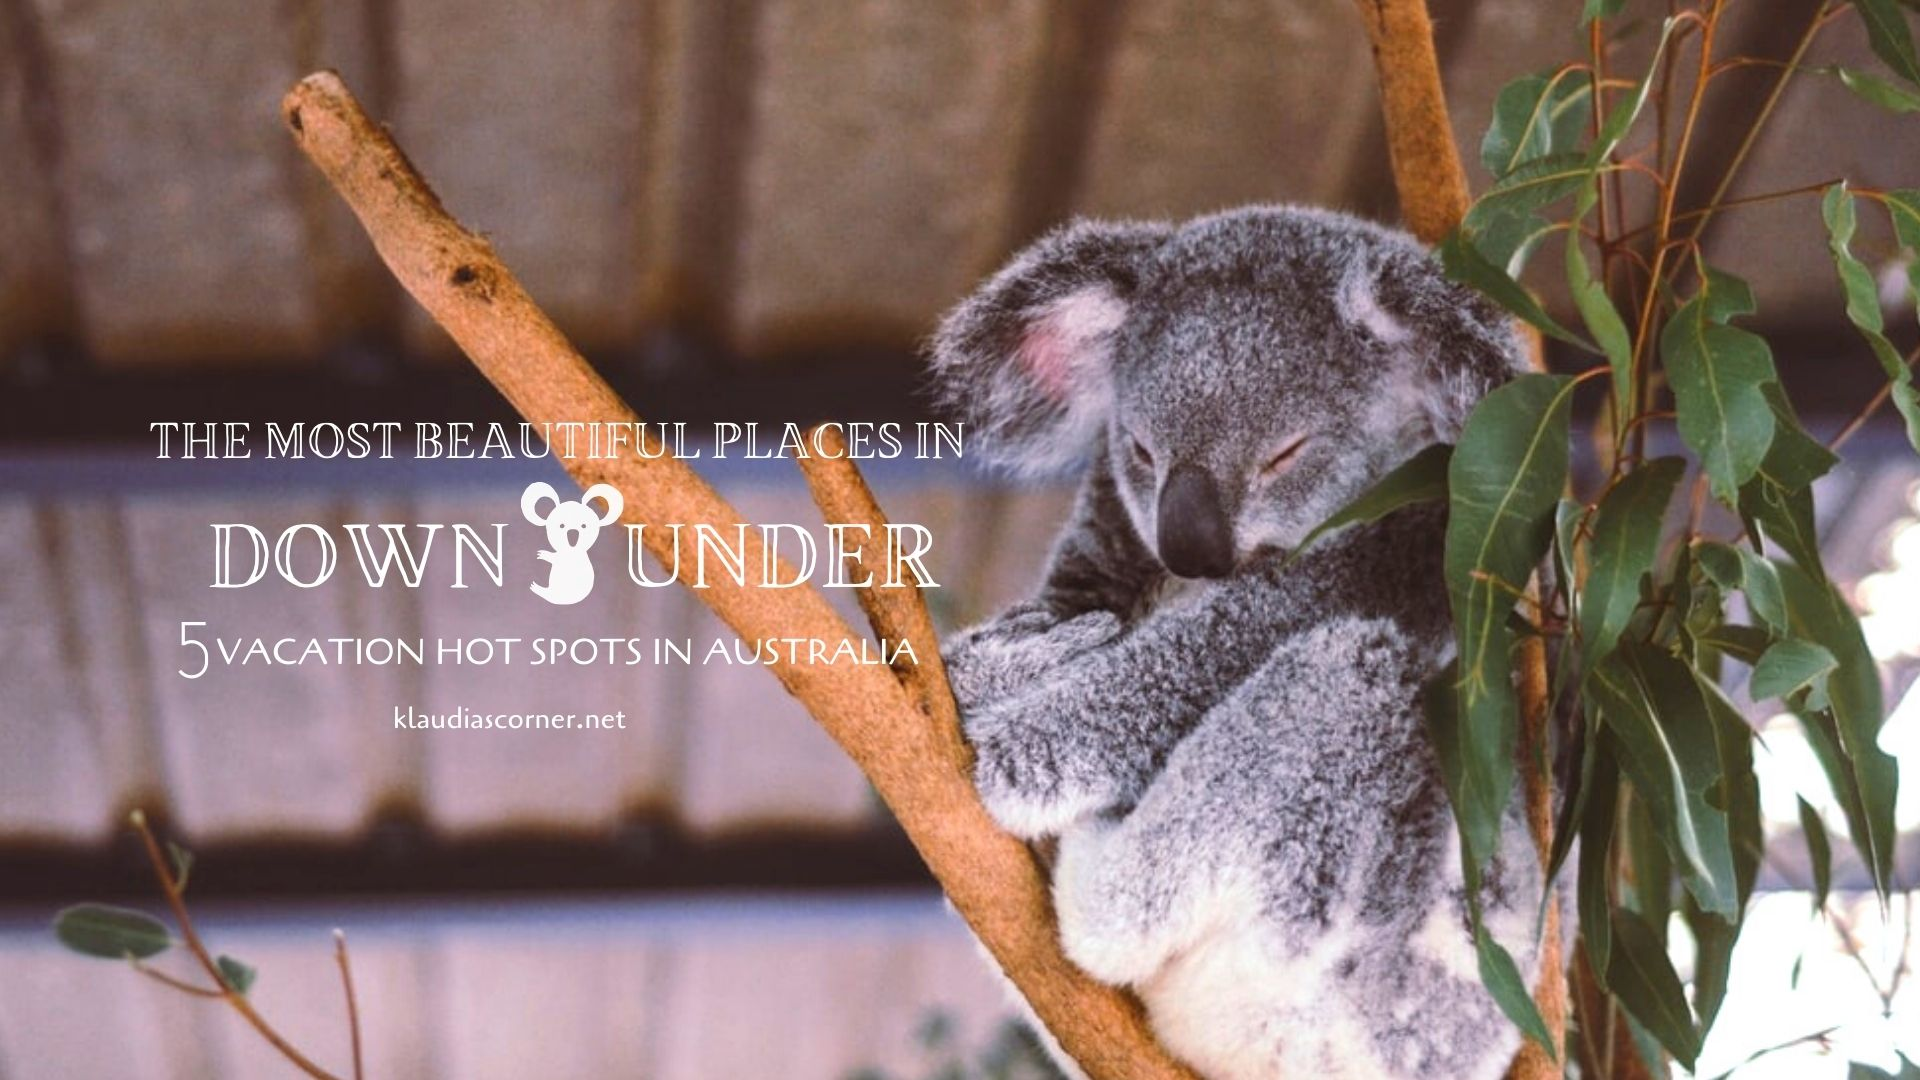 The Most Beautiful Places in Australia - 5 Vacation Places in Down Under